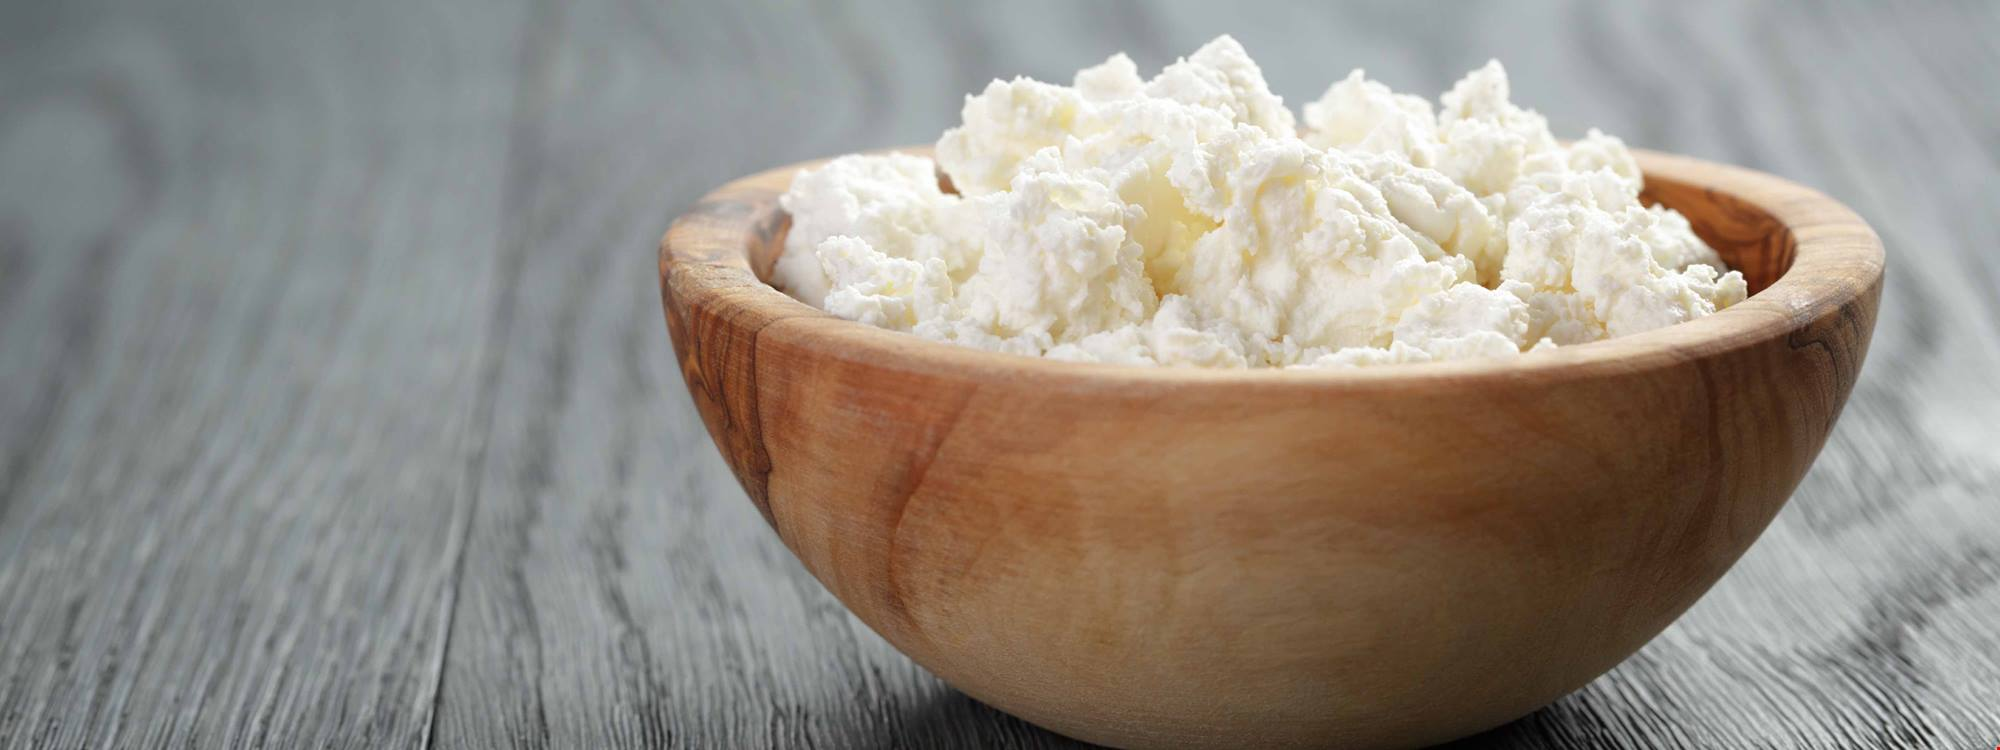 Simplify the production process for mascarpone and ricotta with Nutrilac